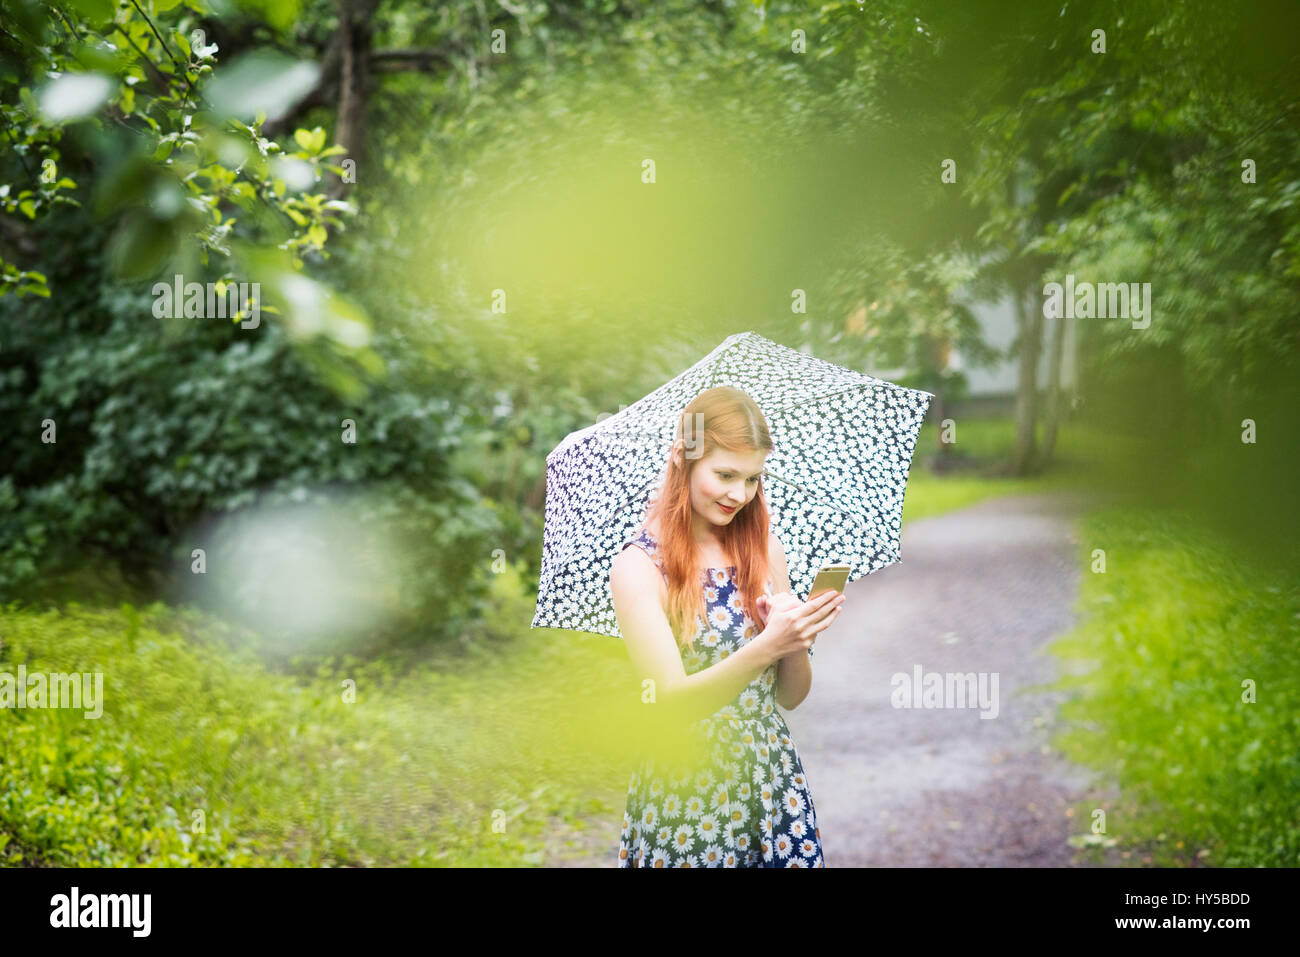 Finland, Pirkanmaa, Tampere, Woman wearing floral dress standing with umbrella in park - Stock Image